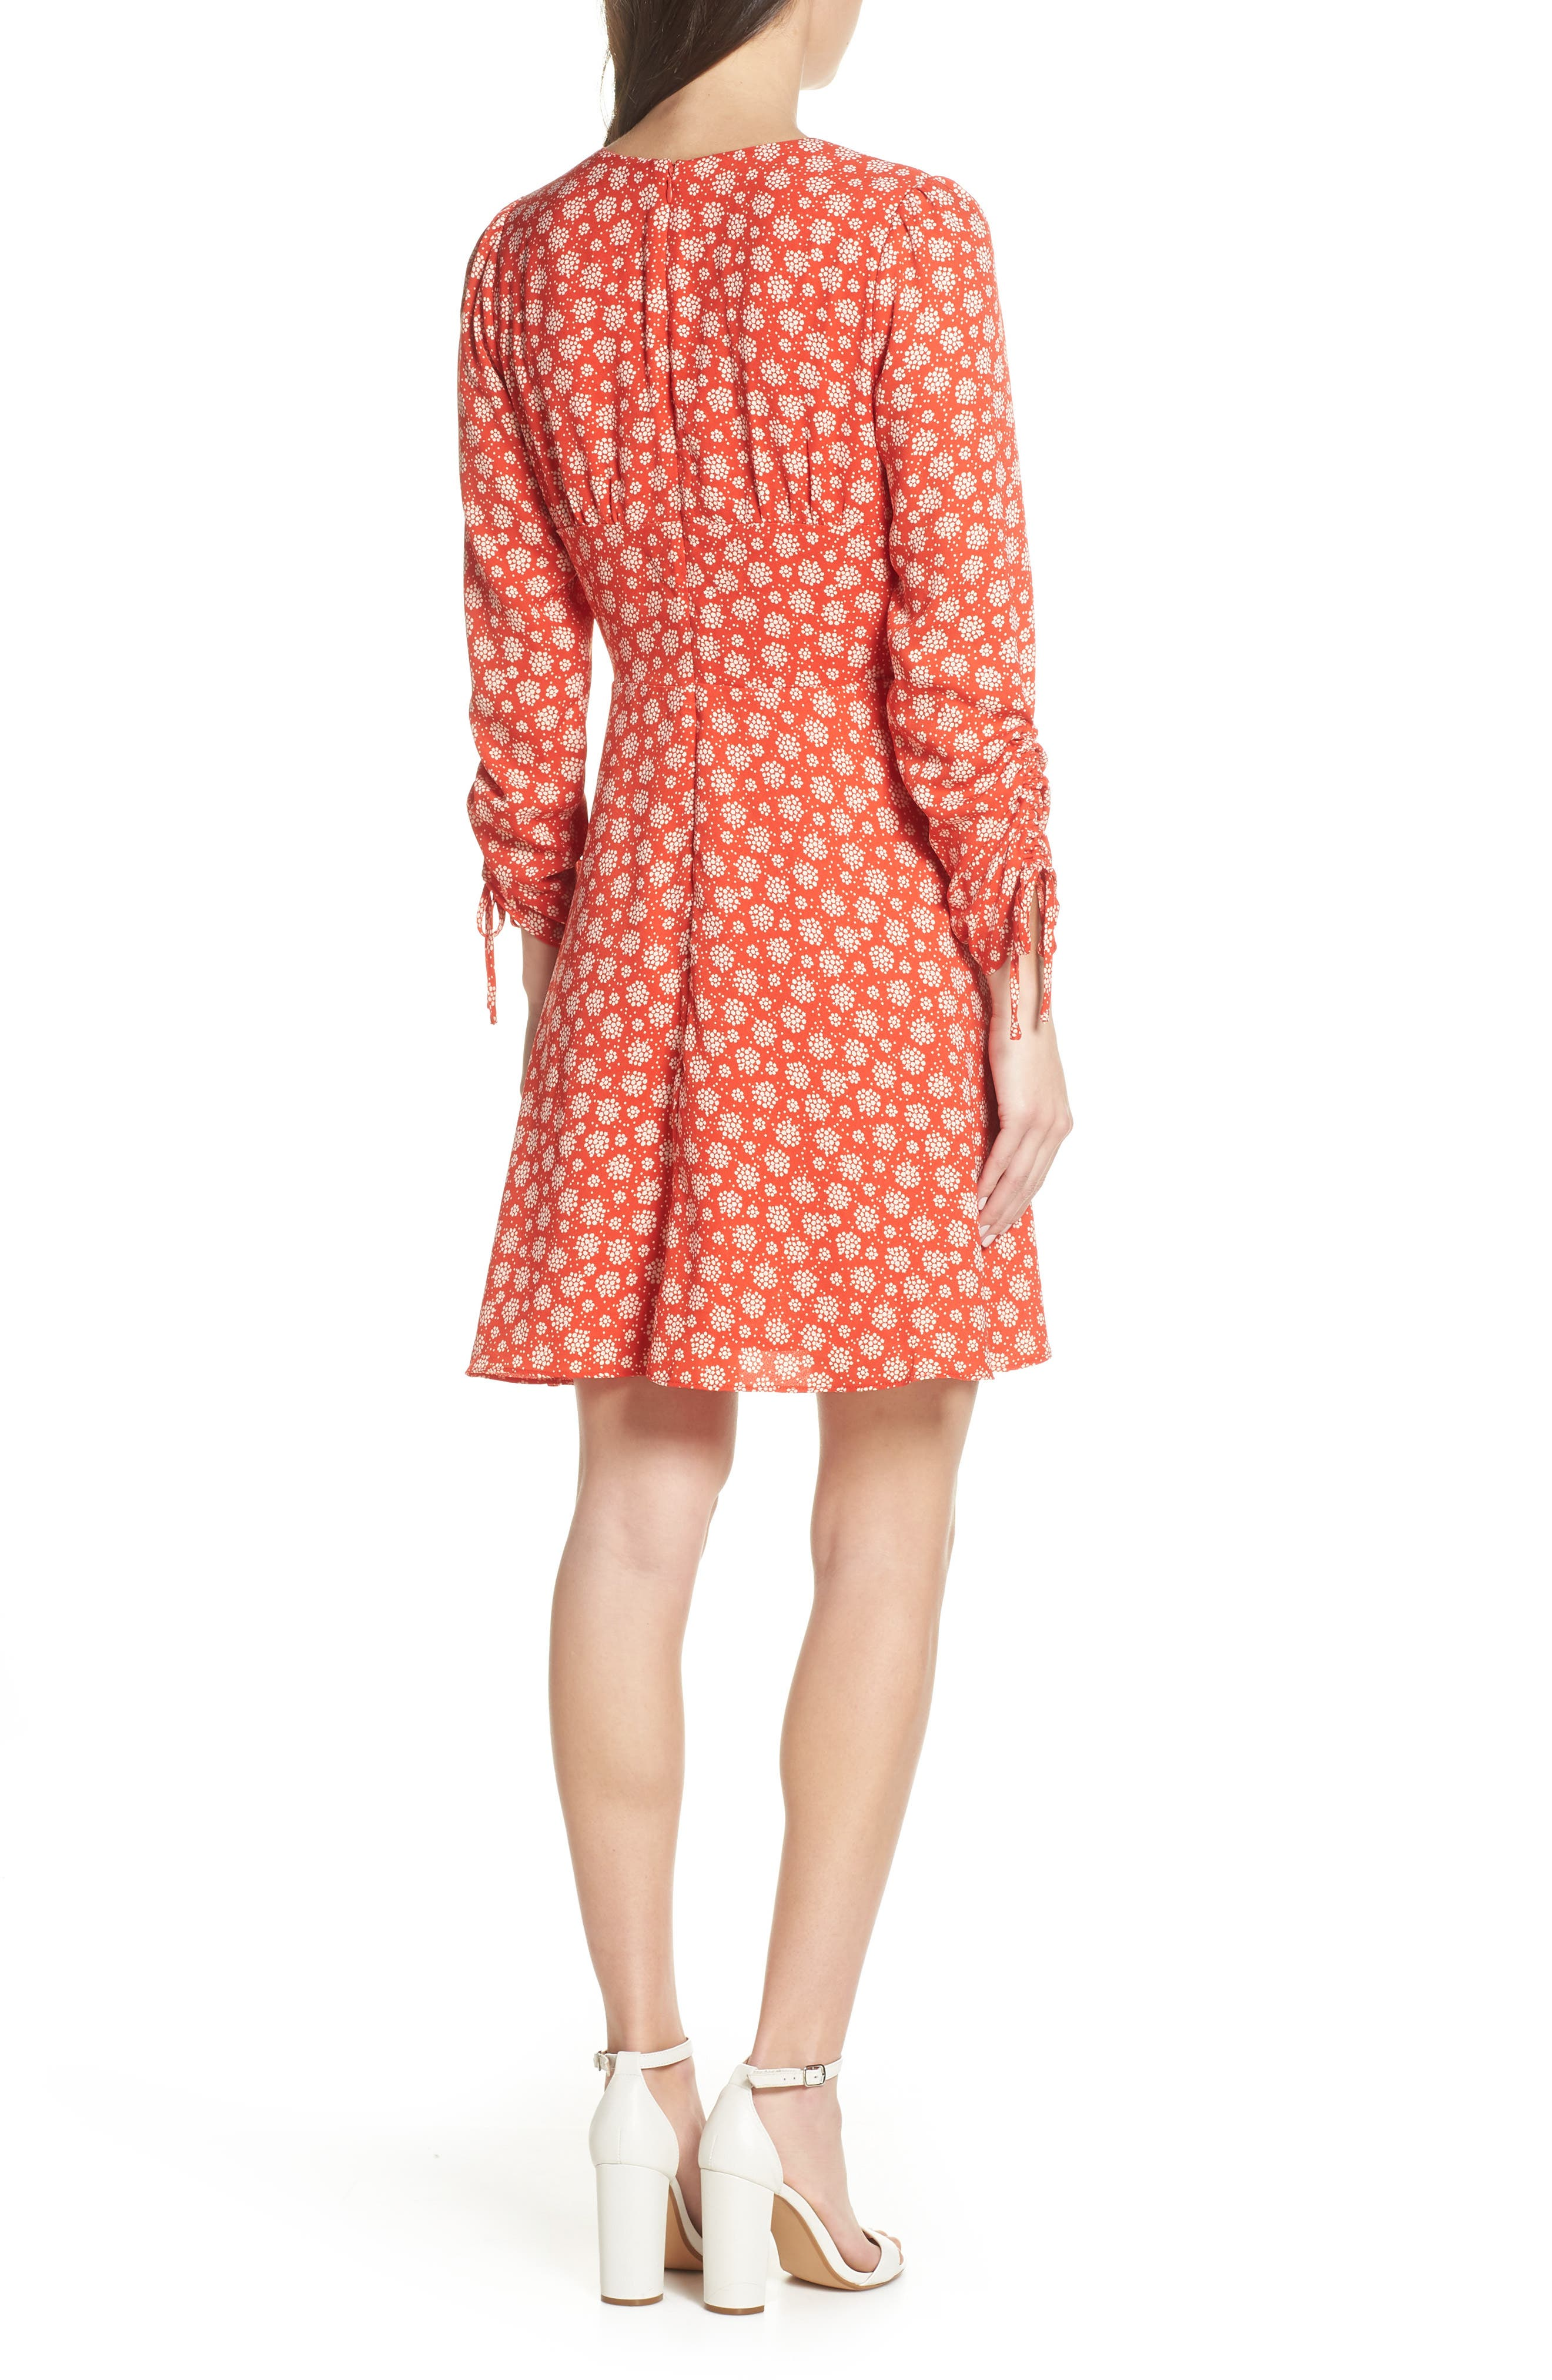 19 COOPER, Ruched Sleeve Fit & Flare Dress, Alternate thumbnail 2, color, 610